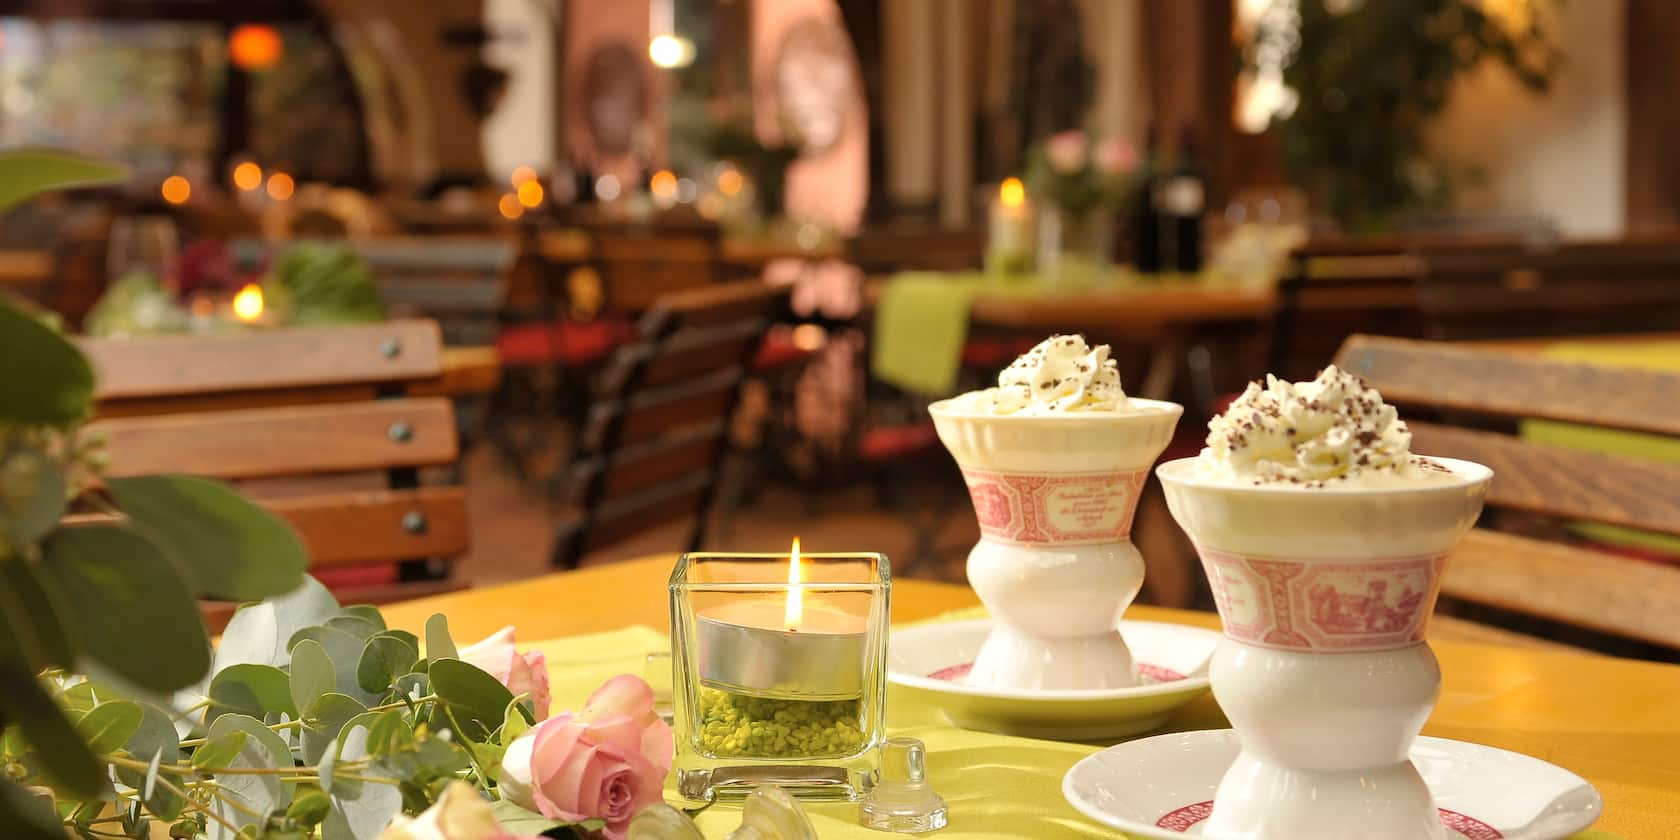 Two cups, topped with whipped cream, sit on a table with a lit candle and several roses in a restaurant with wood slatted chairs